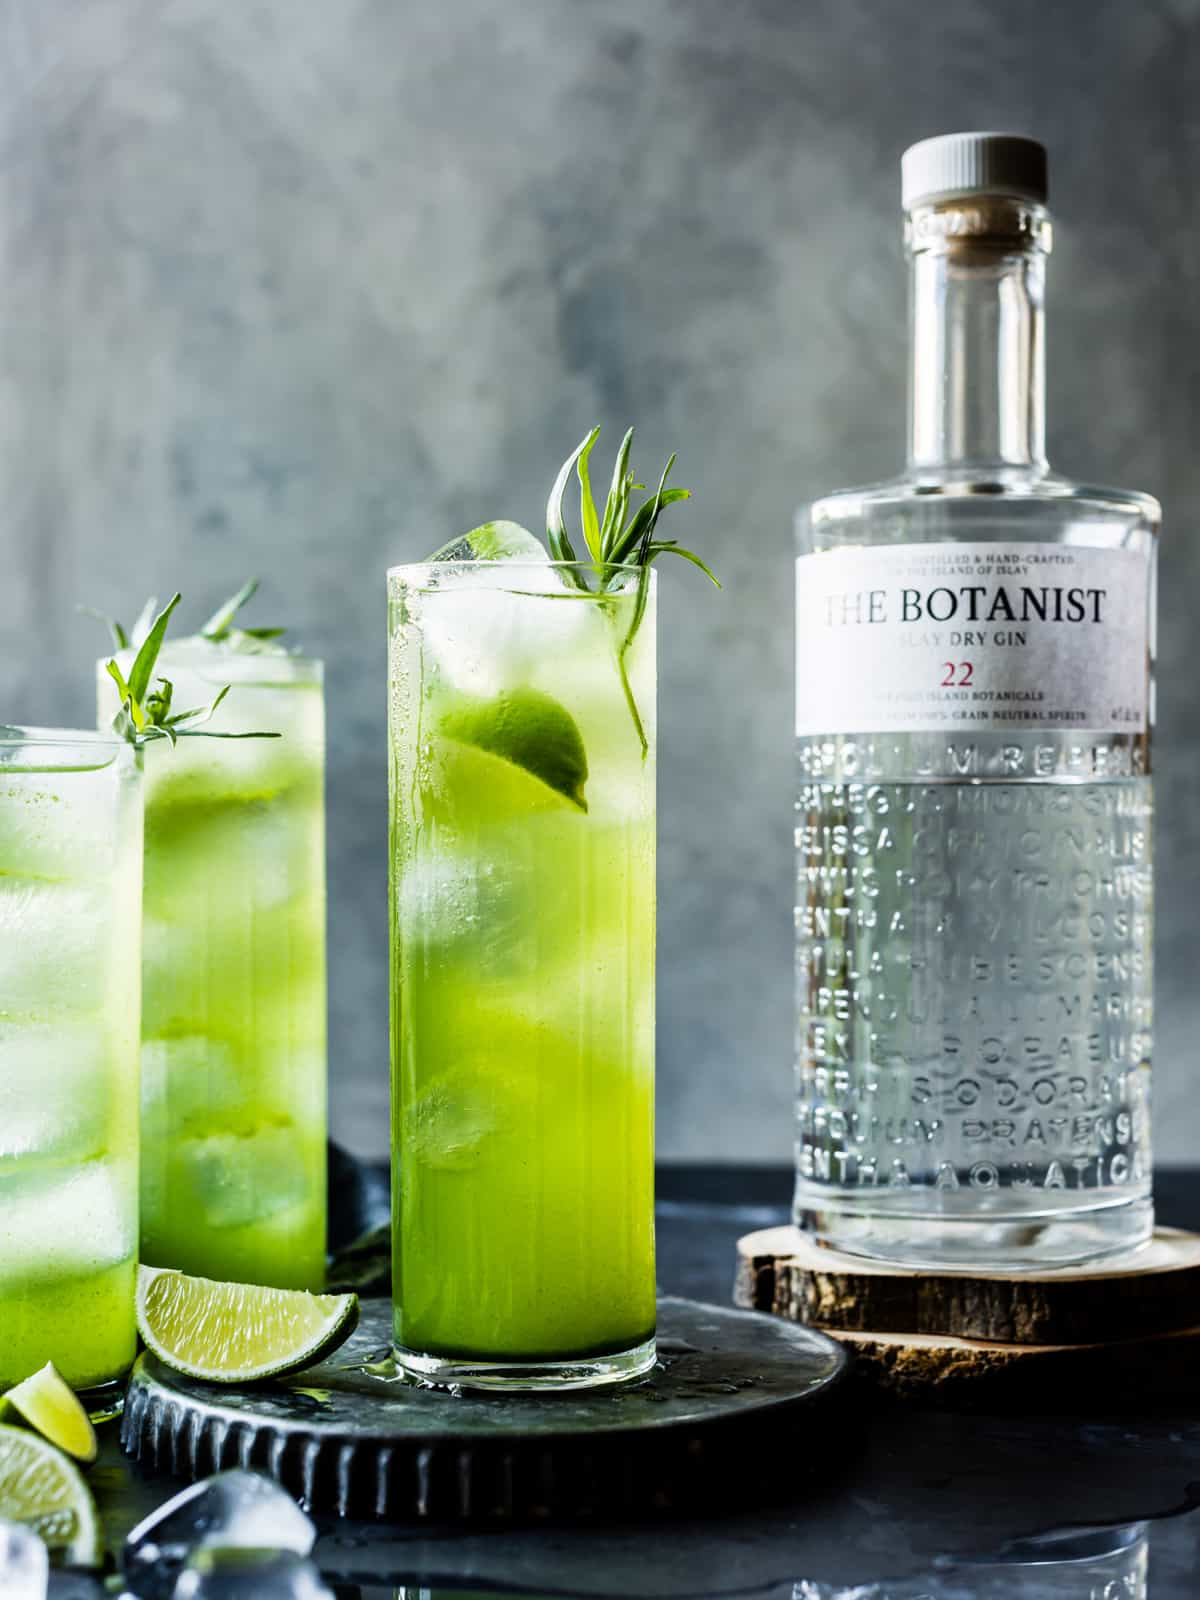 Tarragon Gin and Tonics with bottle of gin